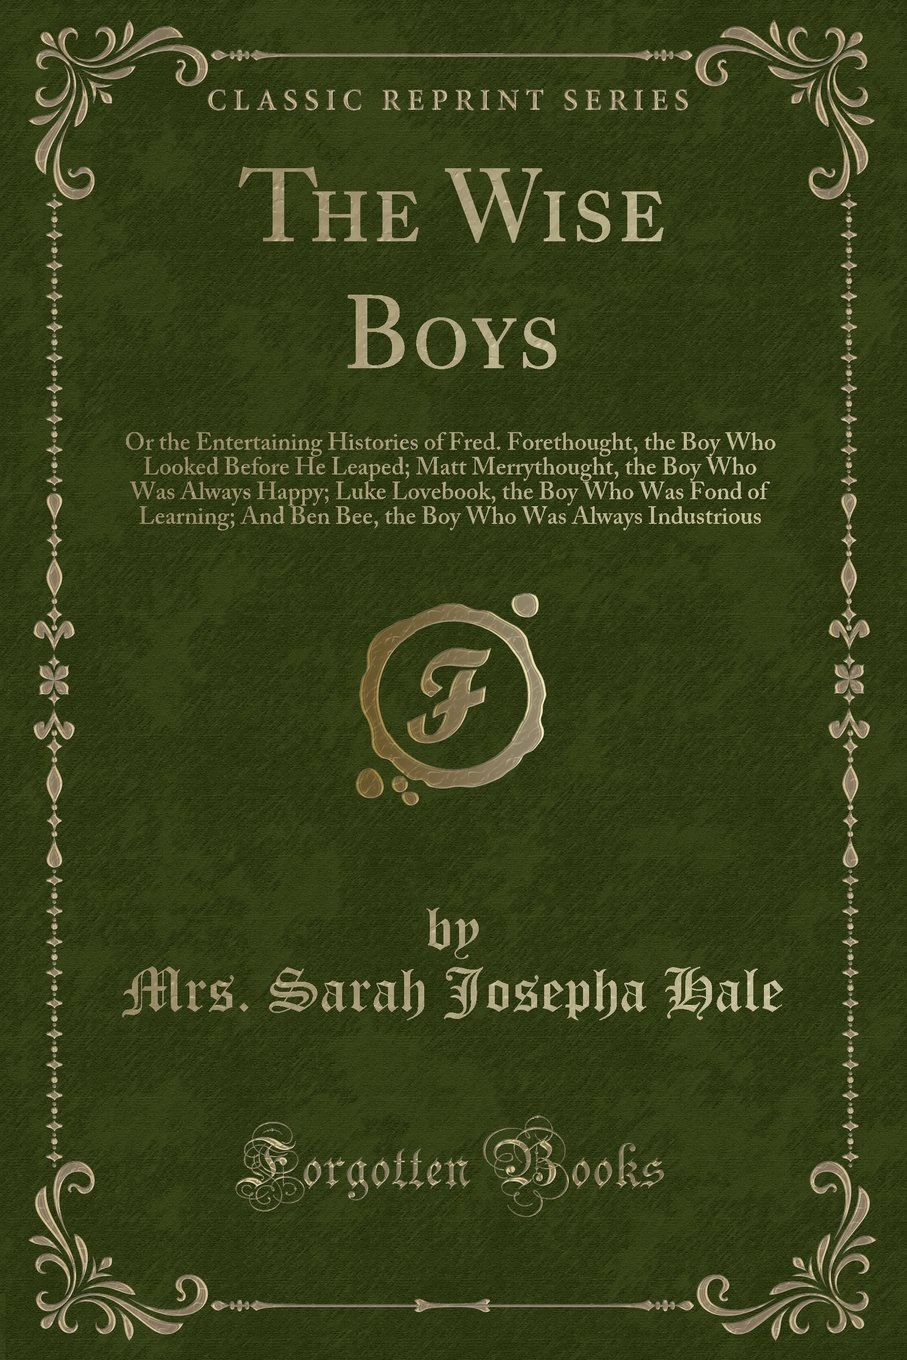 Download The Wise Boys: Or the Entertaining Histories of Fred. Forethought, the Boy Who Looked Before He Leaped; Matt Merrythought, the Boy Who Was Always ... Ben Bee, the Boy Who Was Always Industrious ebook